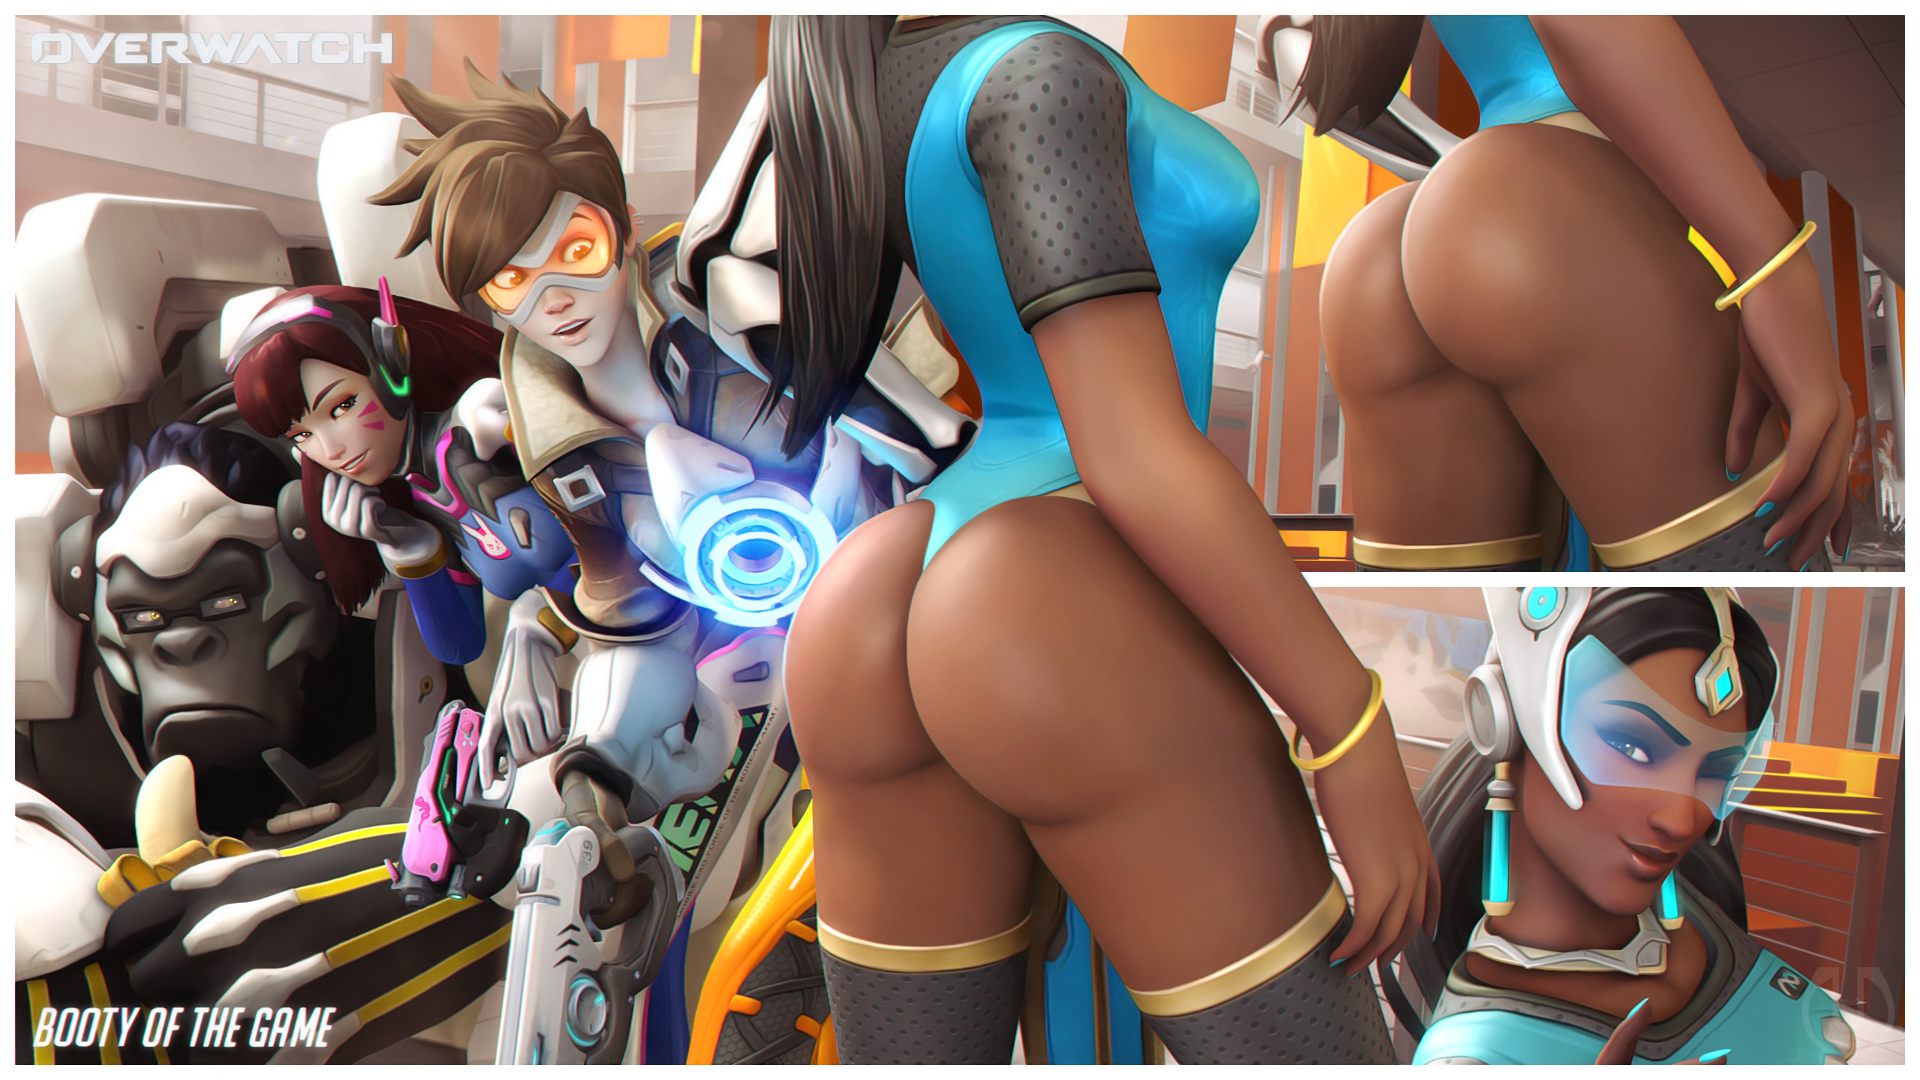 watching symmetra's sexy ass